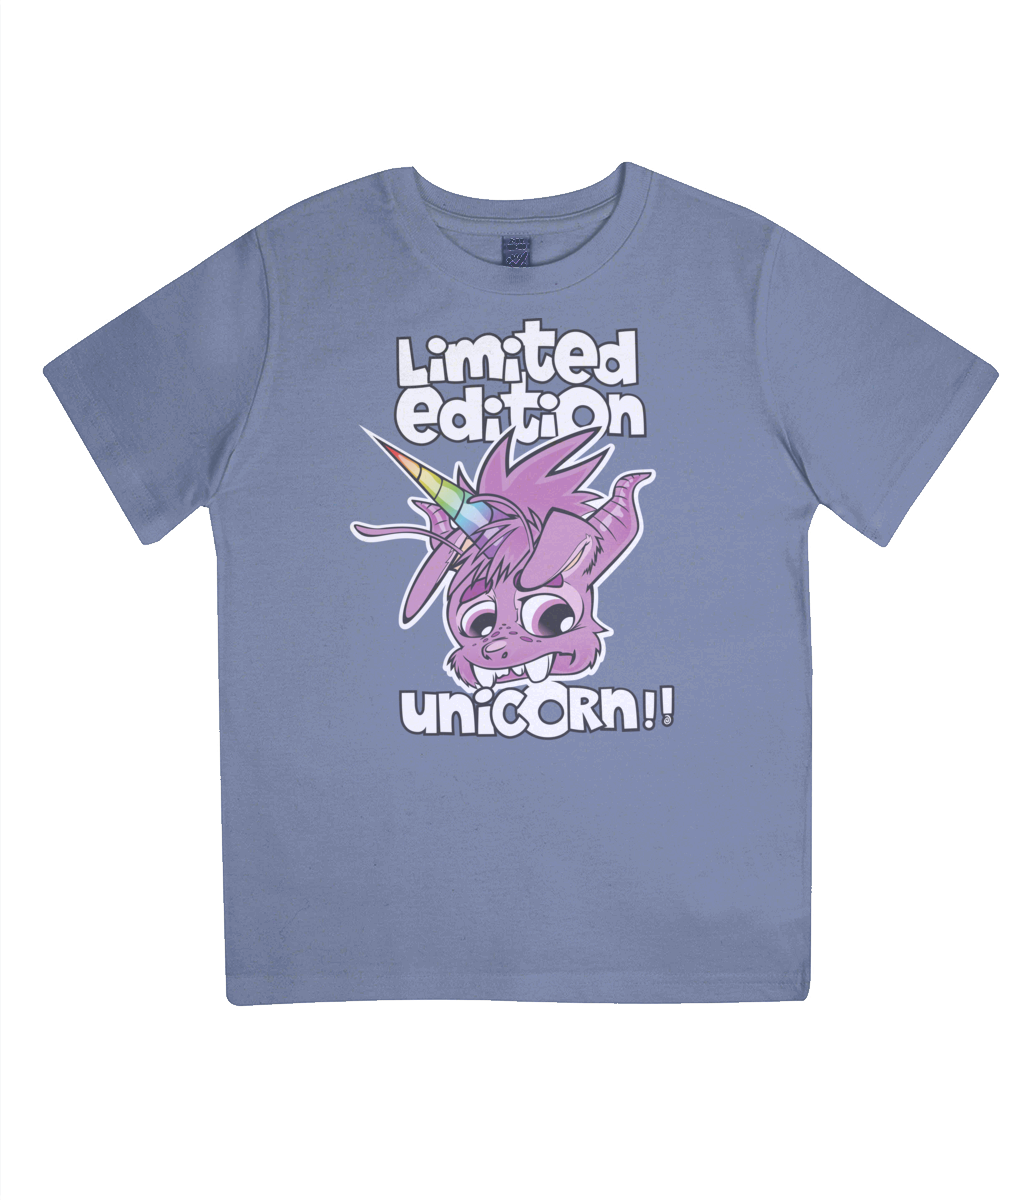 Beasties Unicorn • Kids • Limited edition - Beasties Clothing